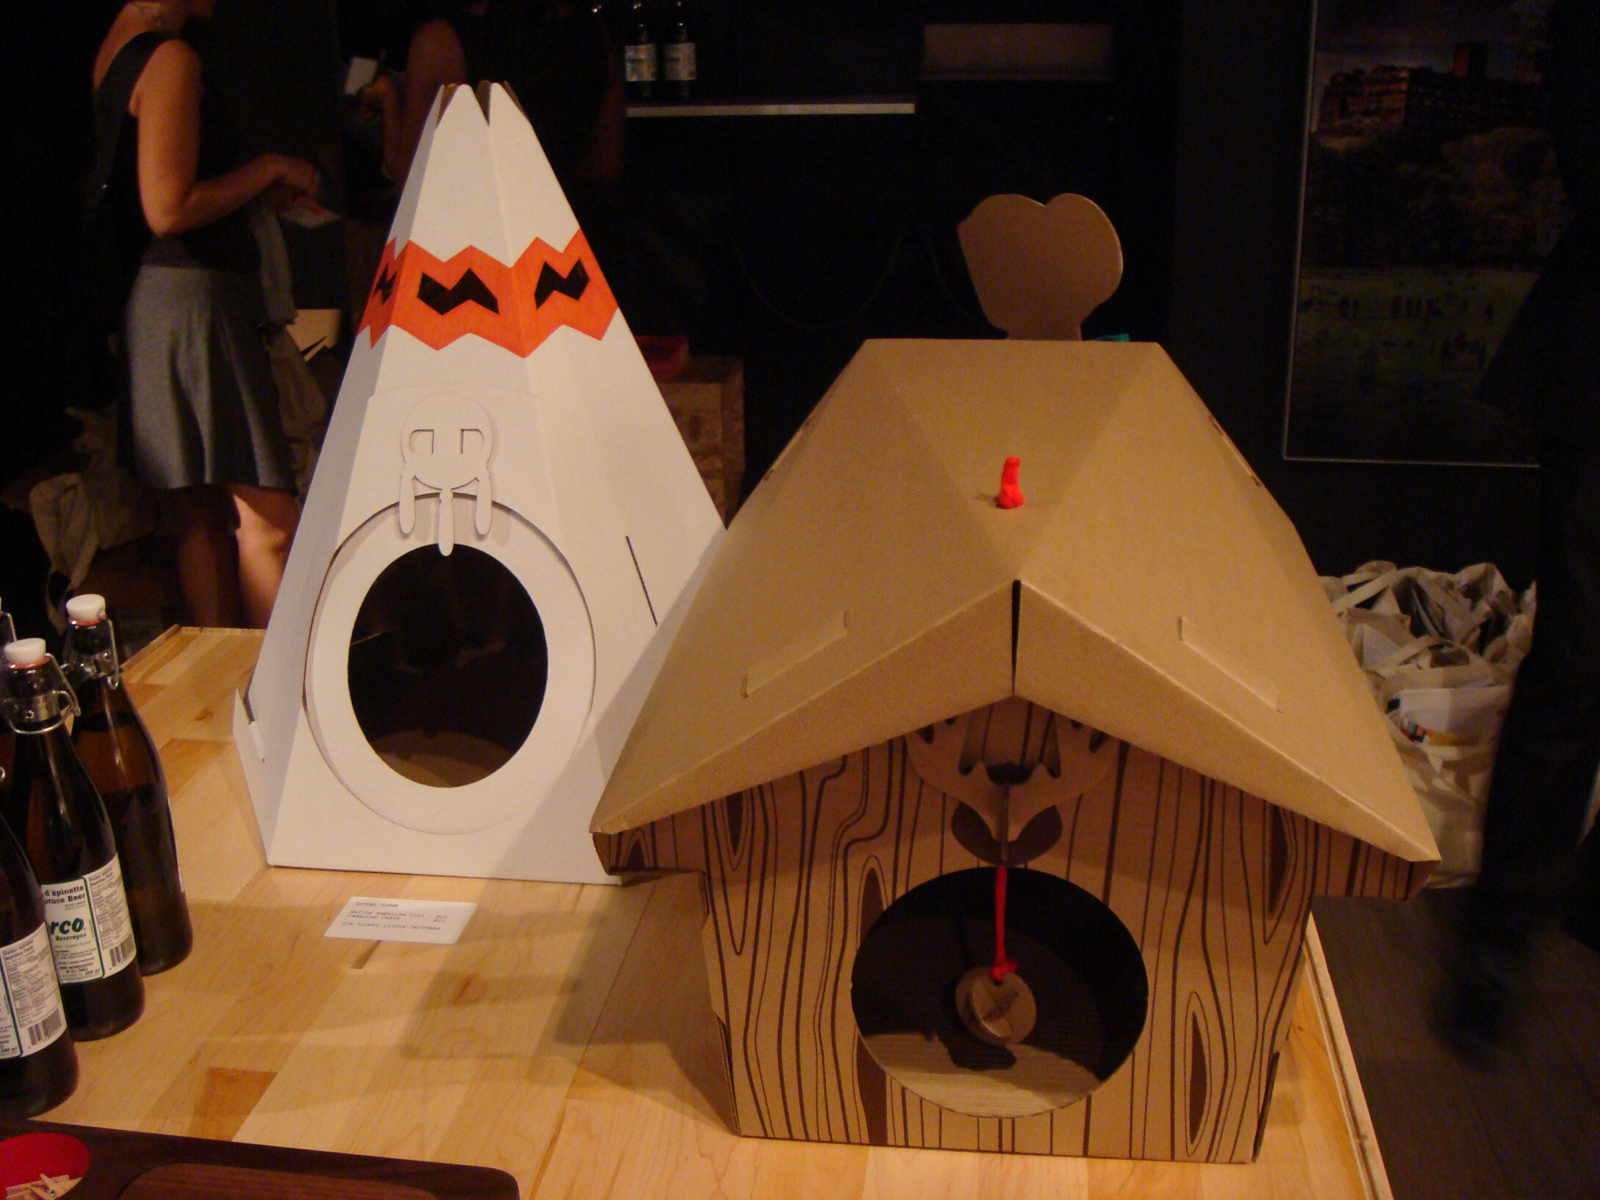 """Designed by recent University de Montreal grads <a href=""""http://www.loyalluxe.com"""">Maud Beauchamp and Marie-Pier Guilmain</a>, these cutesy cardboard pet houses reflect the notion that pet products should be better designed and more refined than what's ty"""